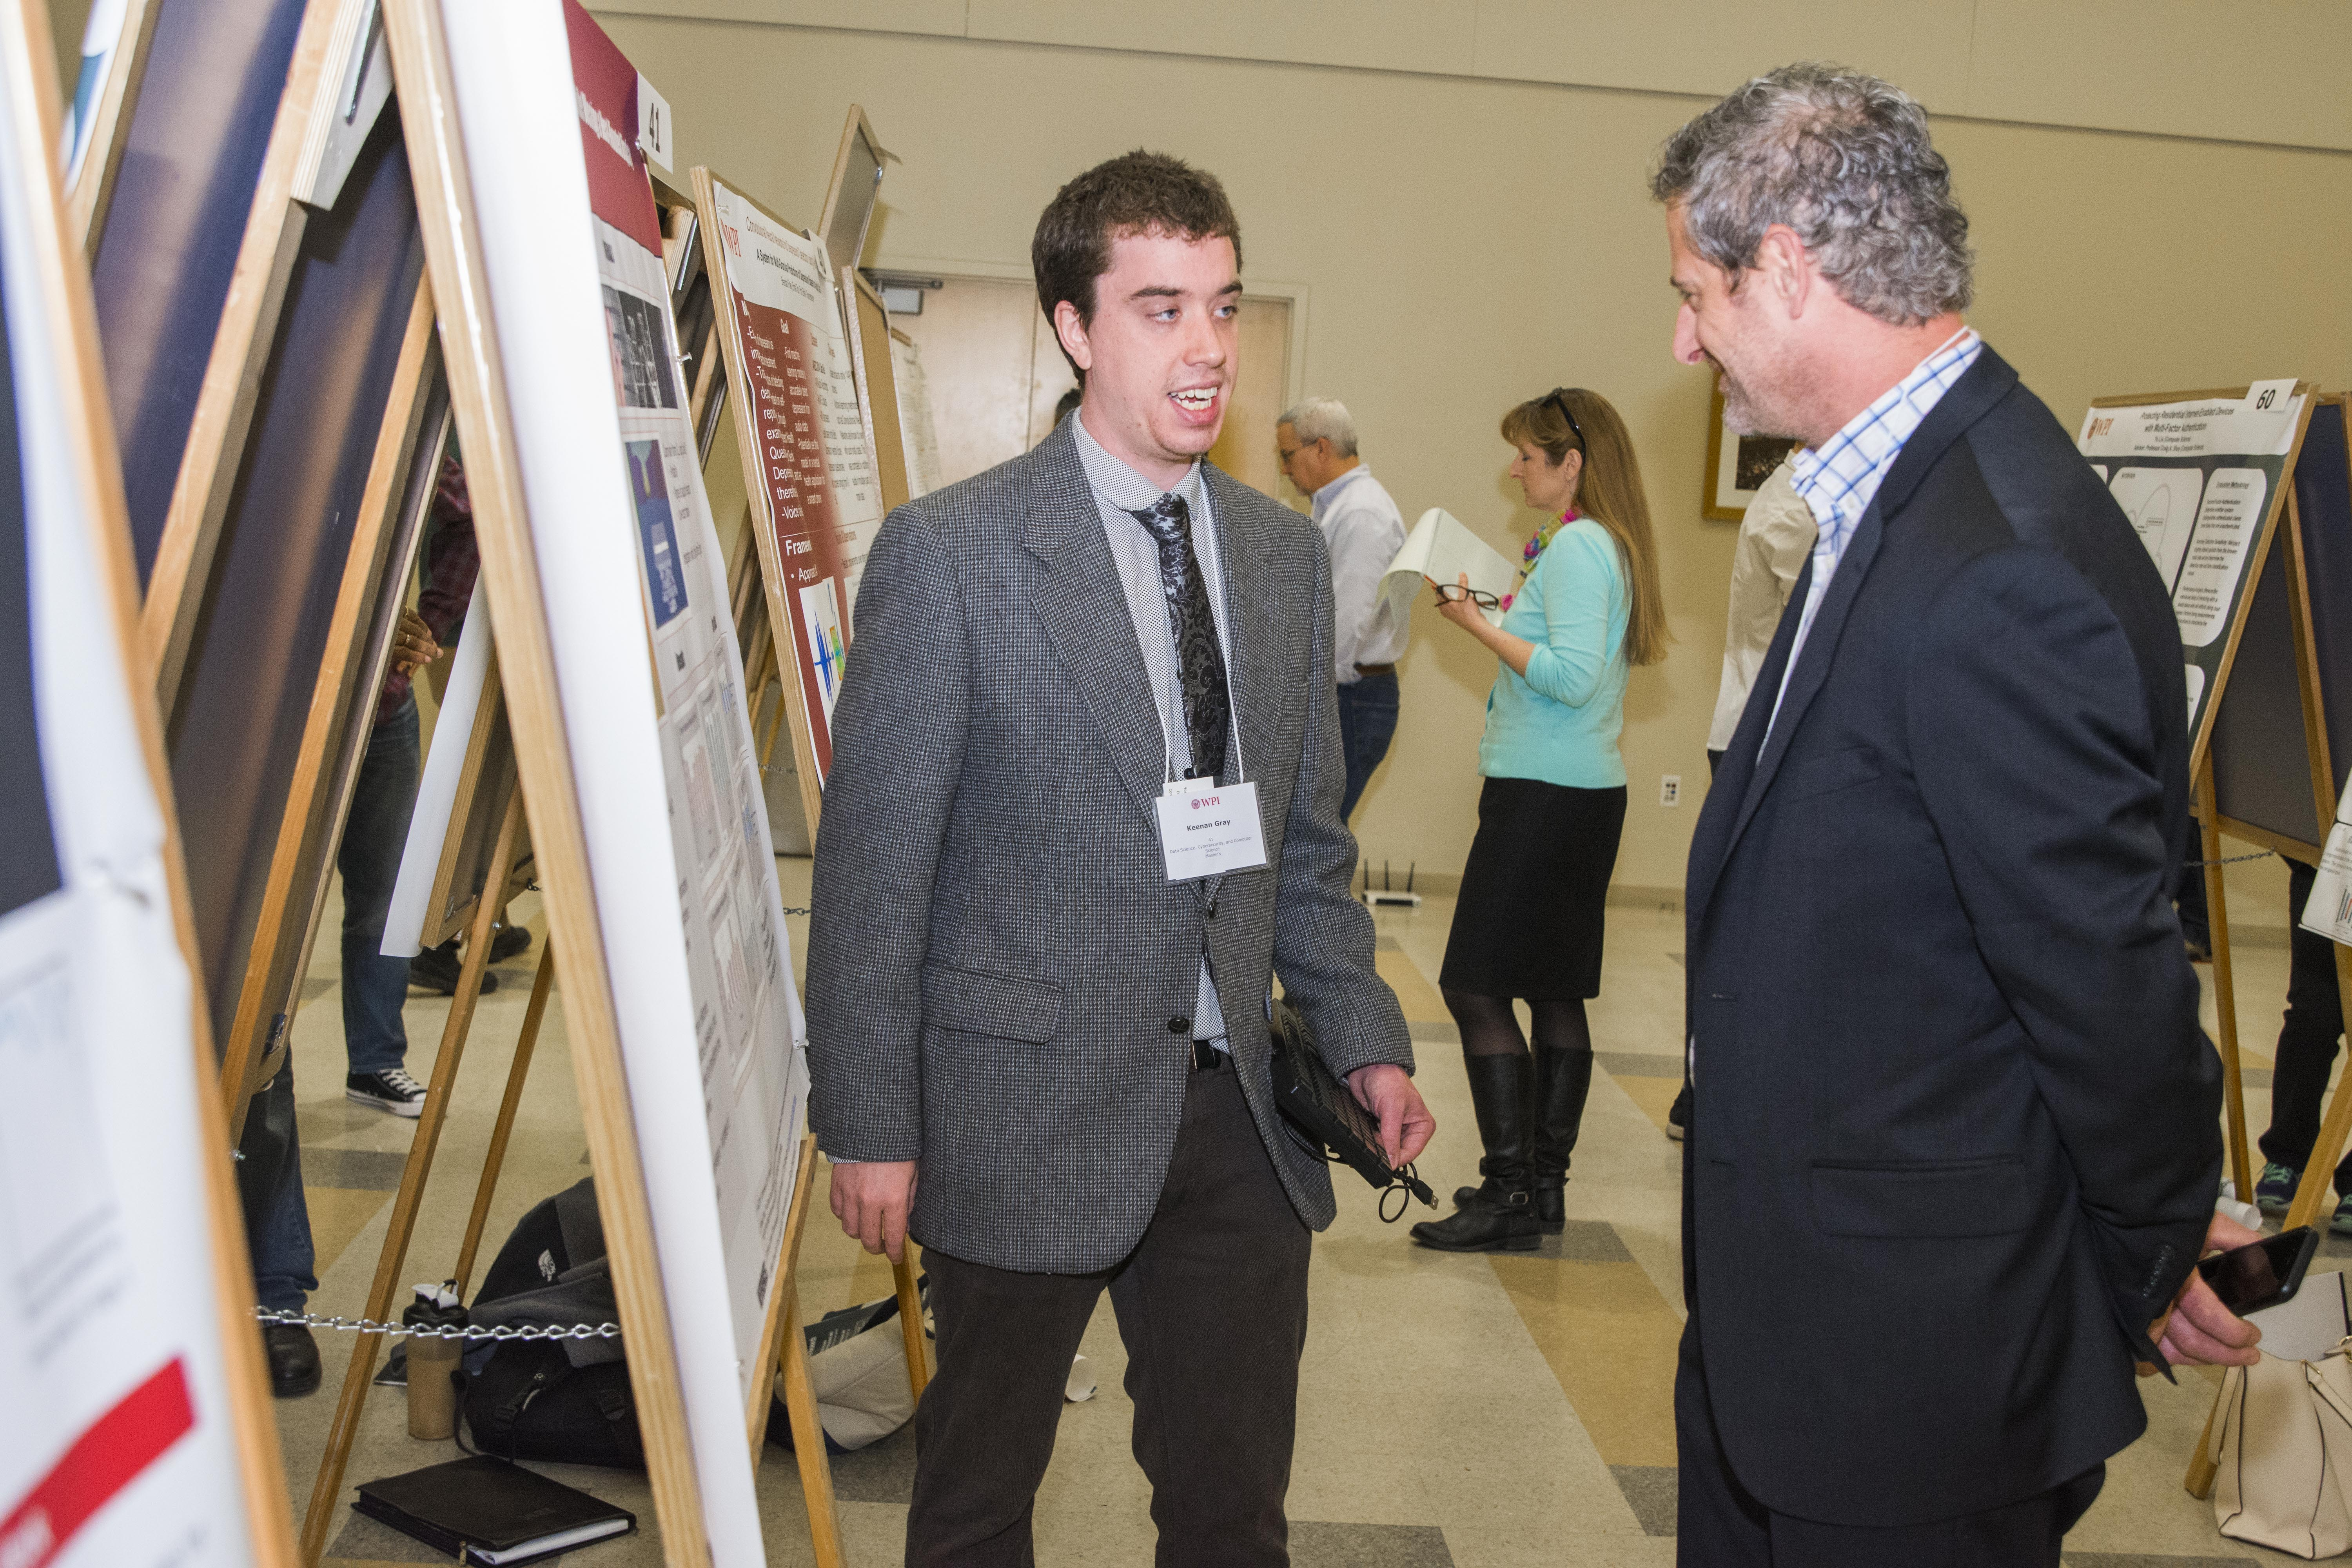 A student dressed in a suit and tie explains his project work to a judge, also in professional dress.